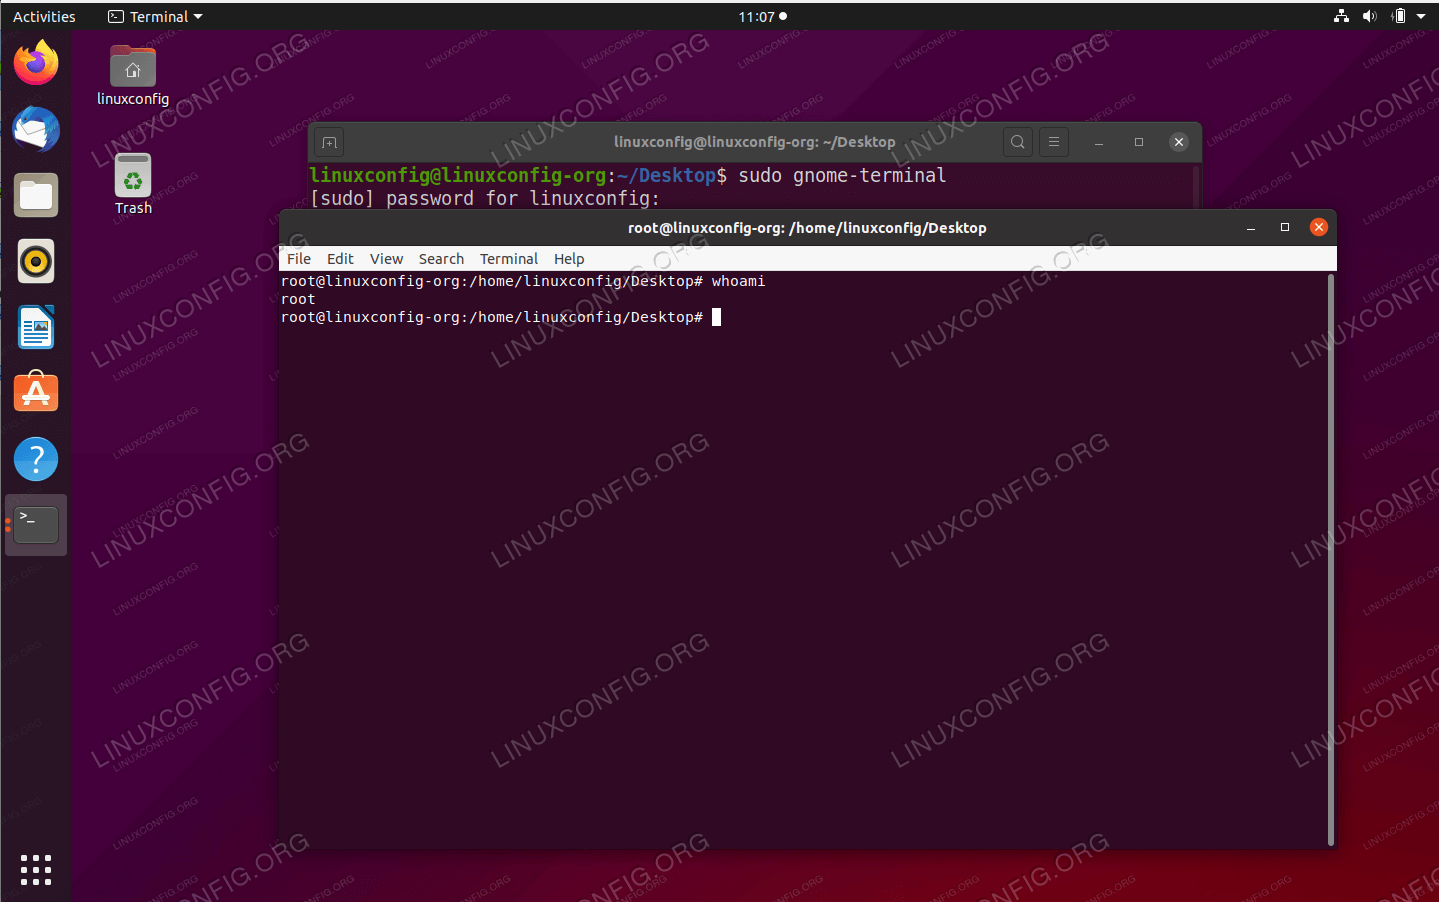 Command Line Terminal on Ubuntu 20.04